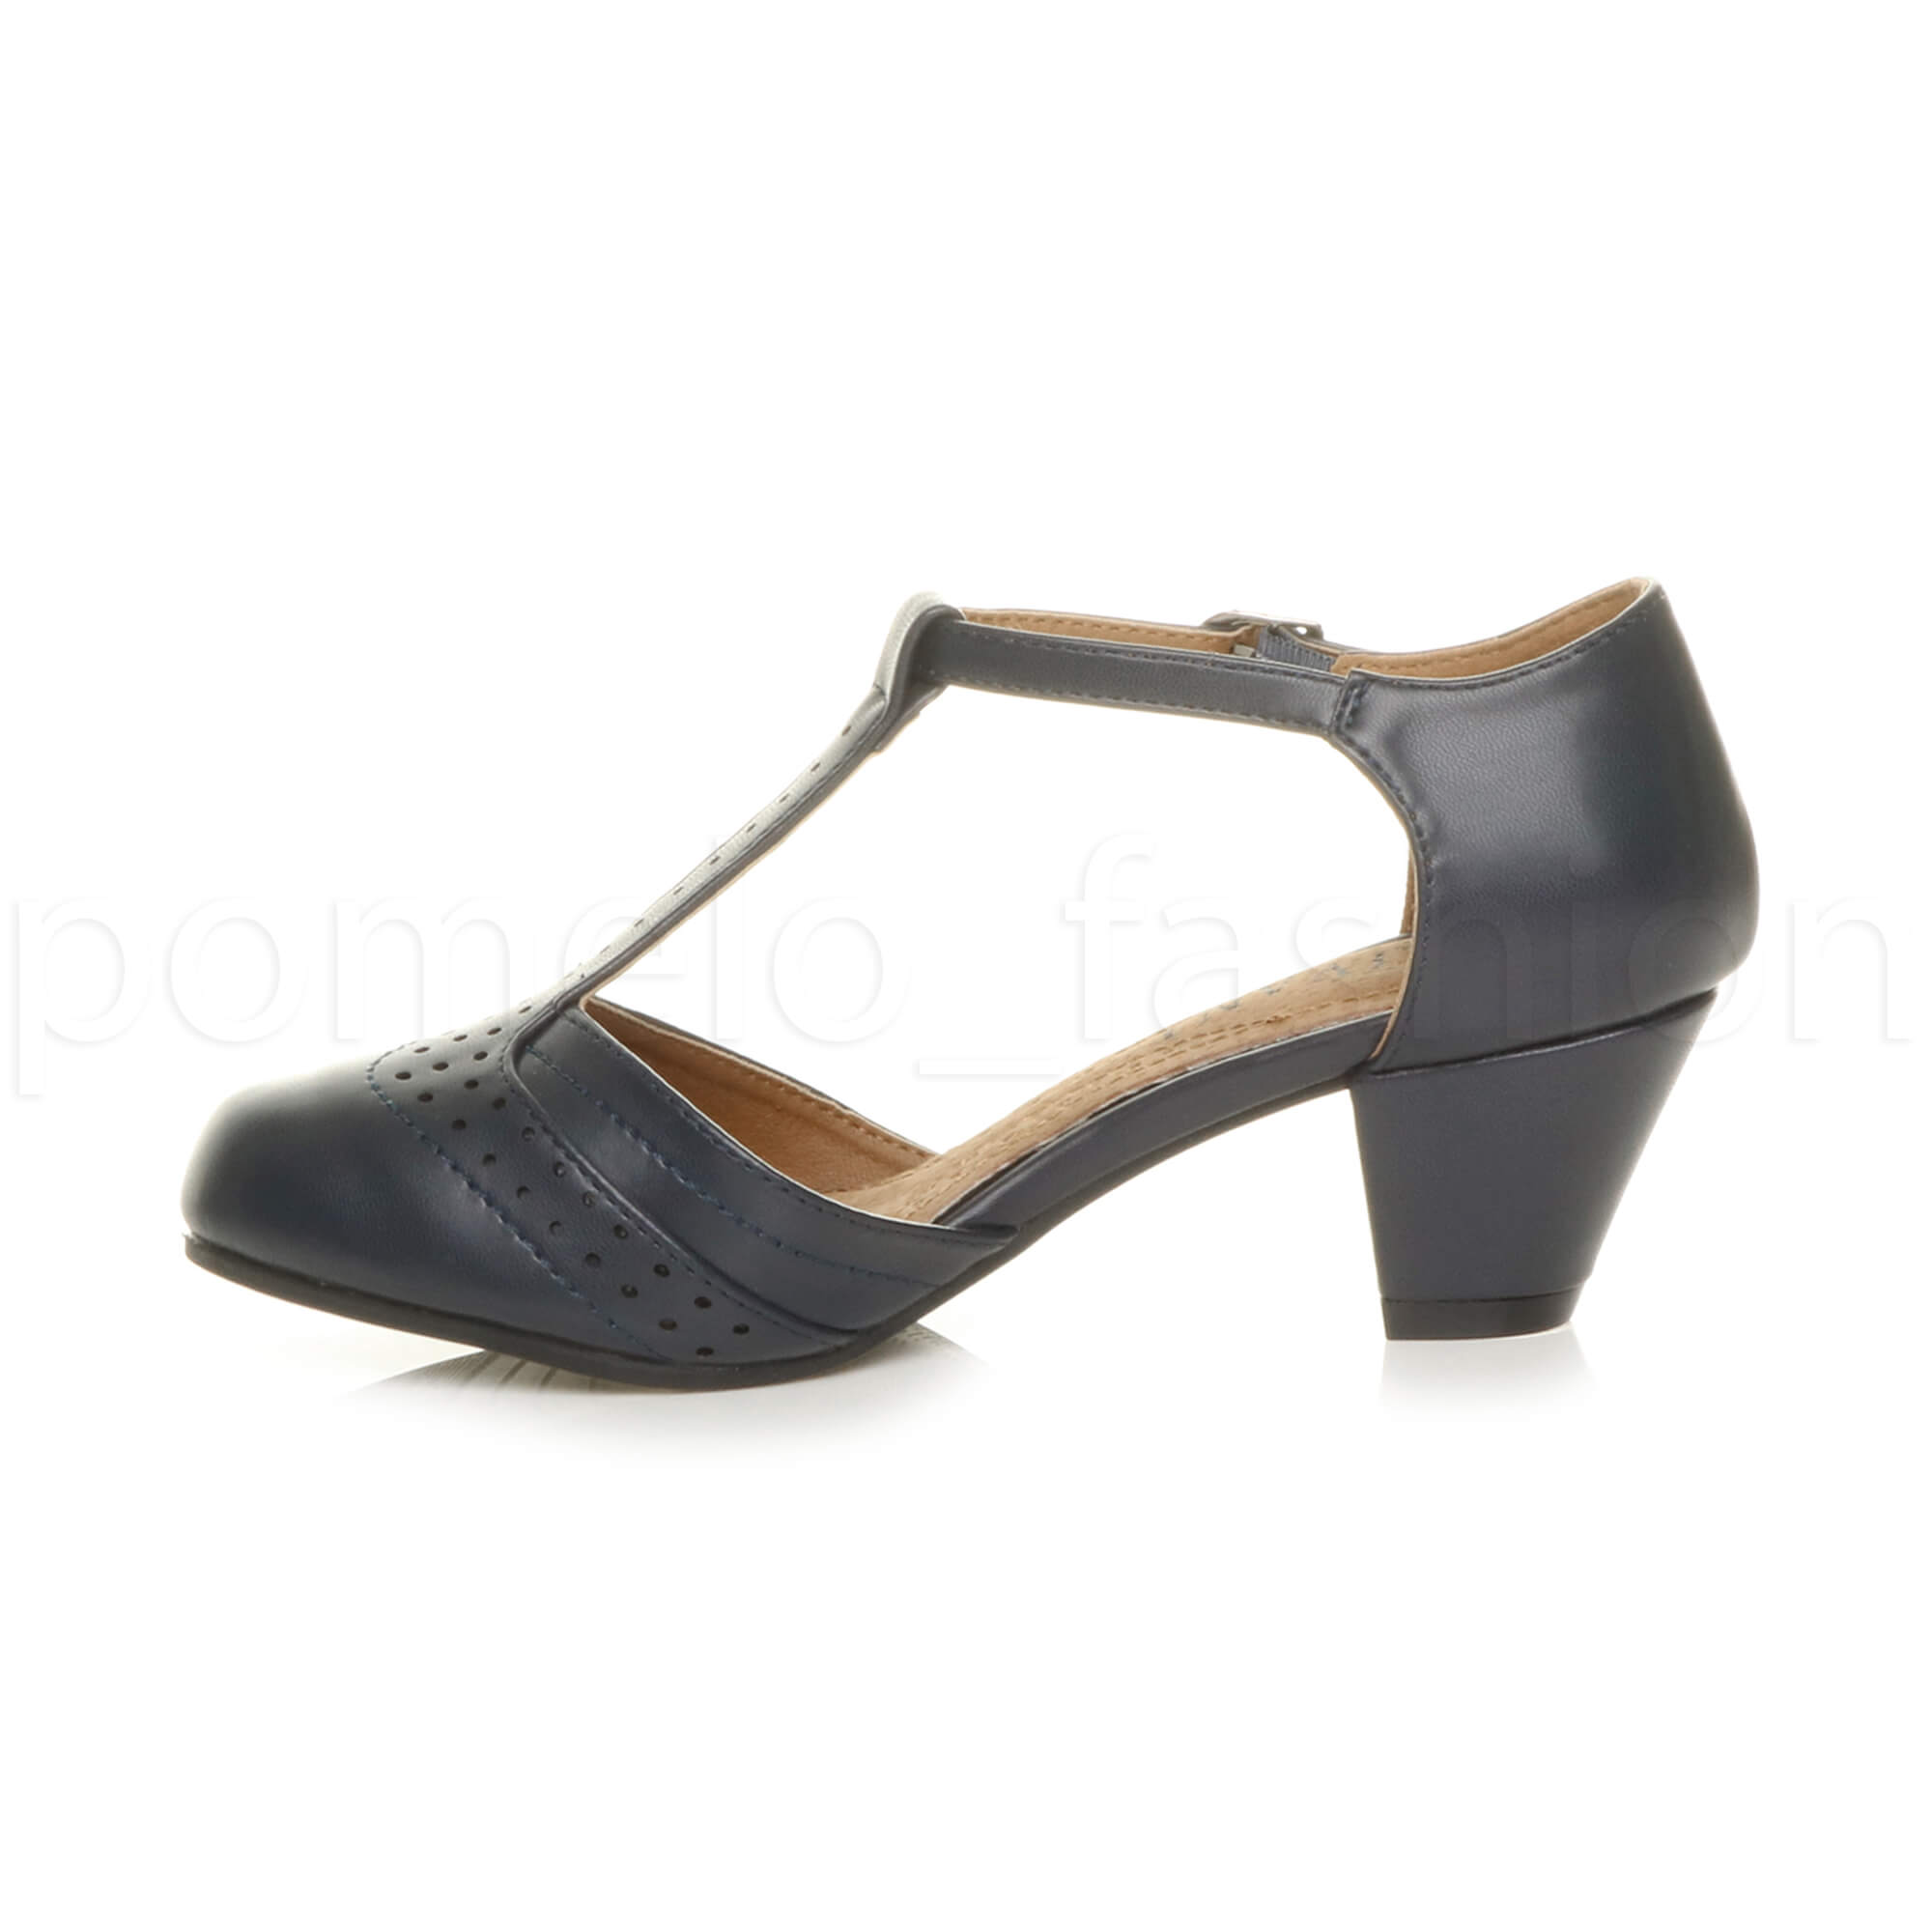 Brogues Womens Navy Shoes Mid Heel